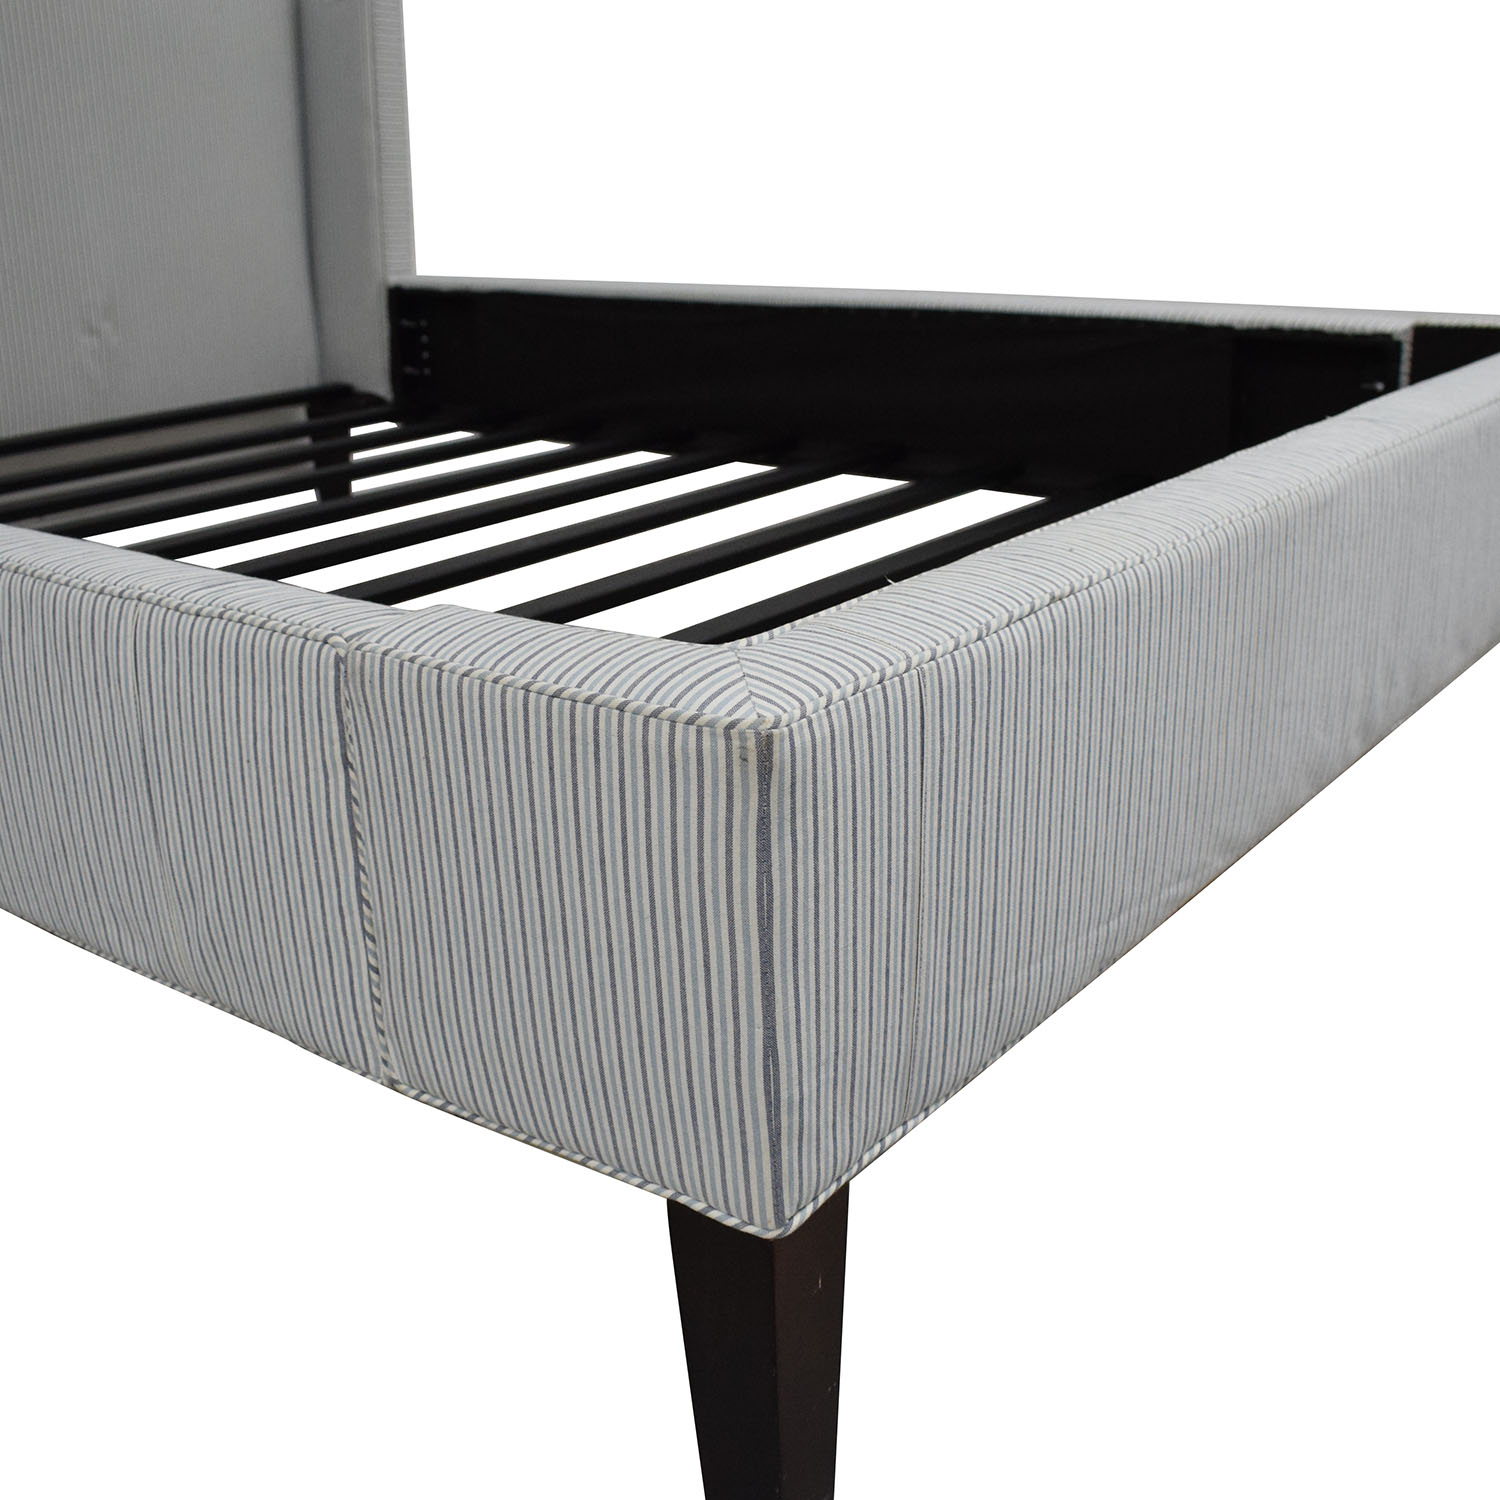 Serena & Lily Serena & Lily Broderick Shelter Full Bed Frame coupon